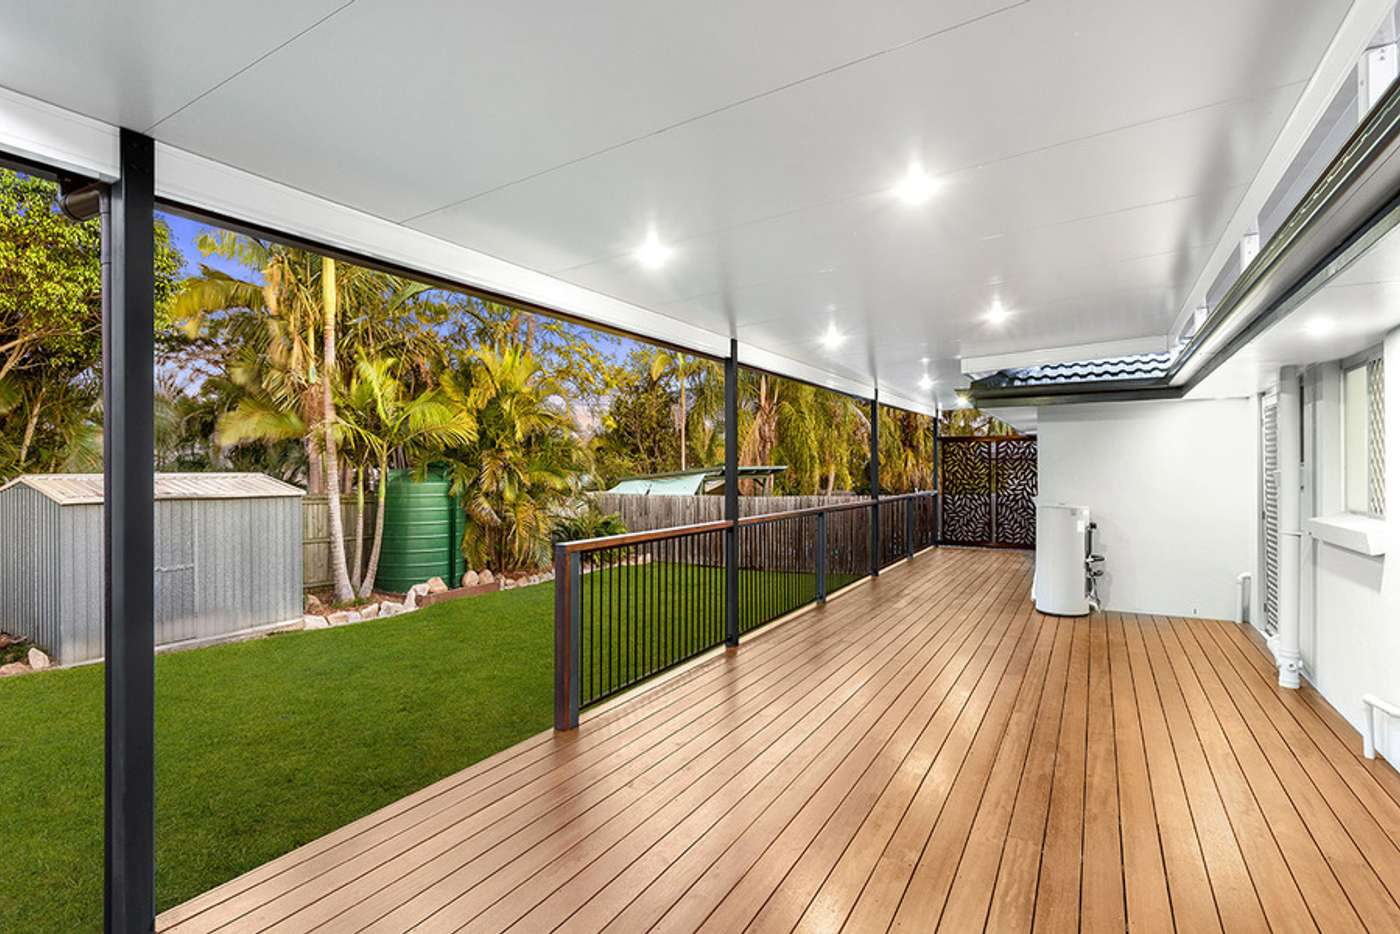 Main view of Homely house listing, 24 Redpath Street, Wishart QLD 4122